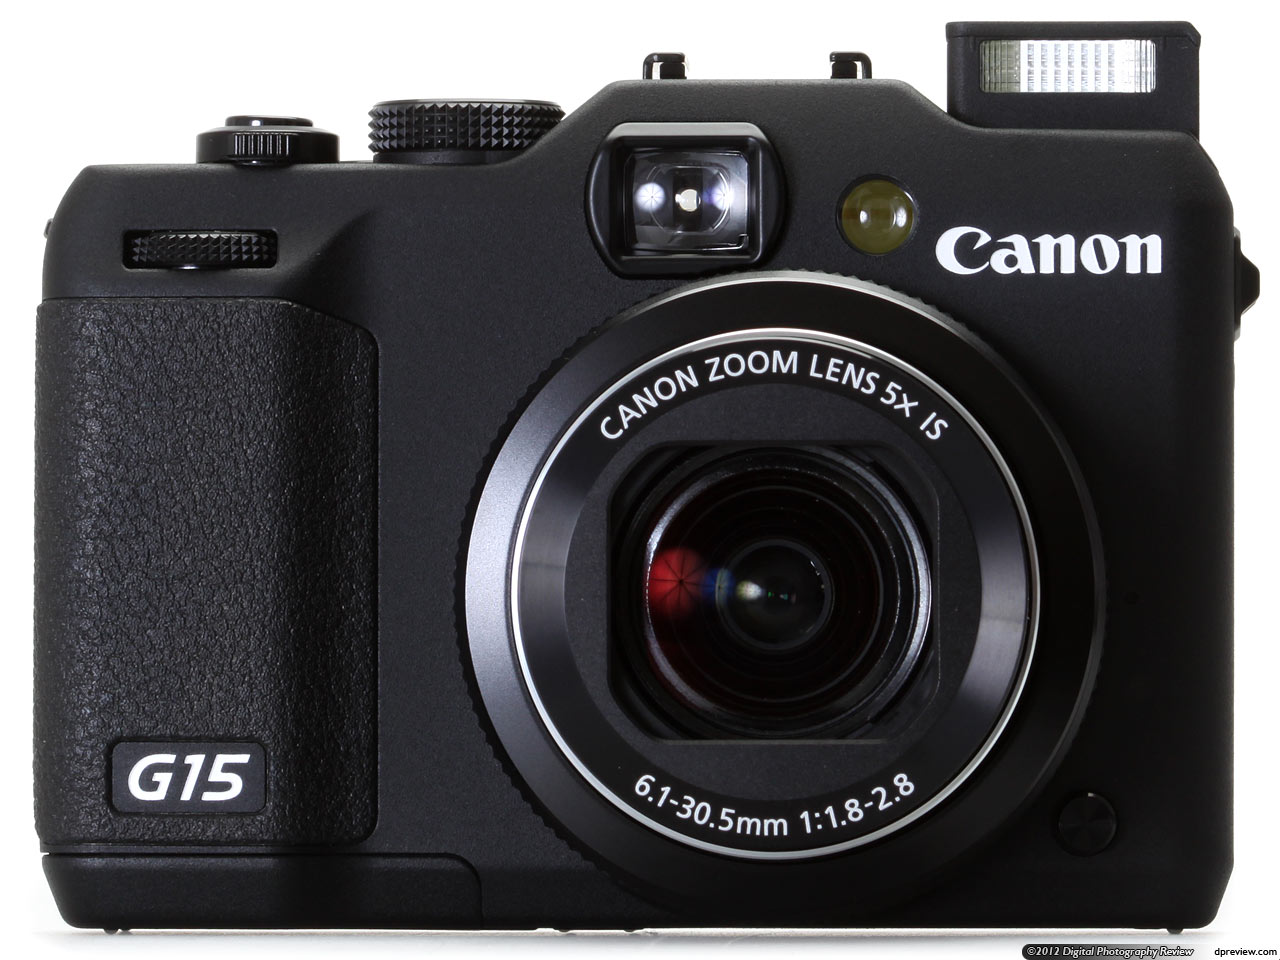 canon powershot g15 quick review digital photography review rh dpreview com canon g15 user manual pdf canon g15 instruction manual